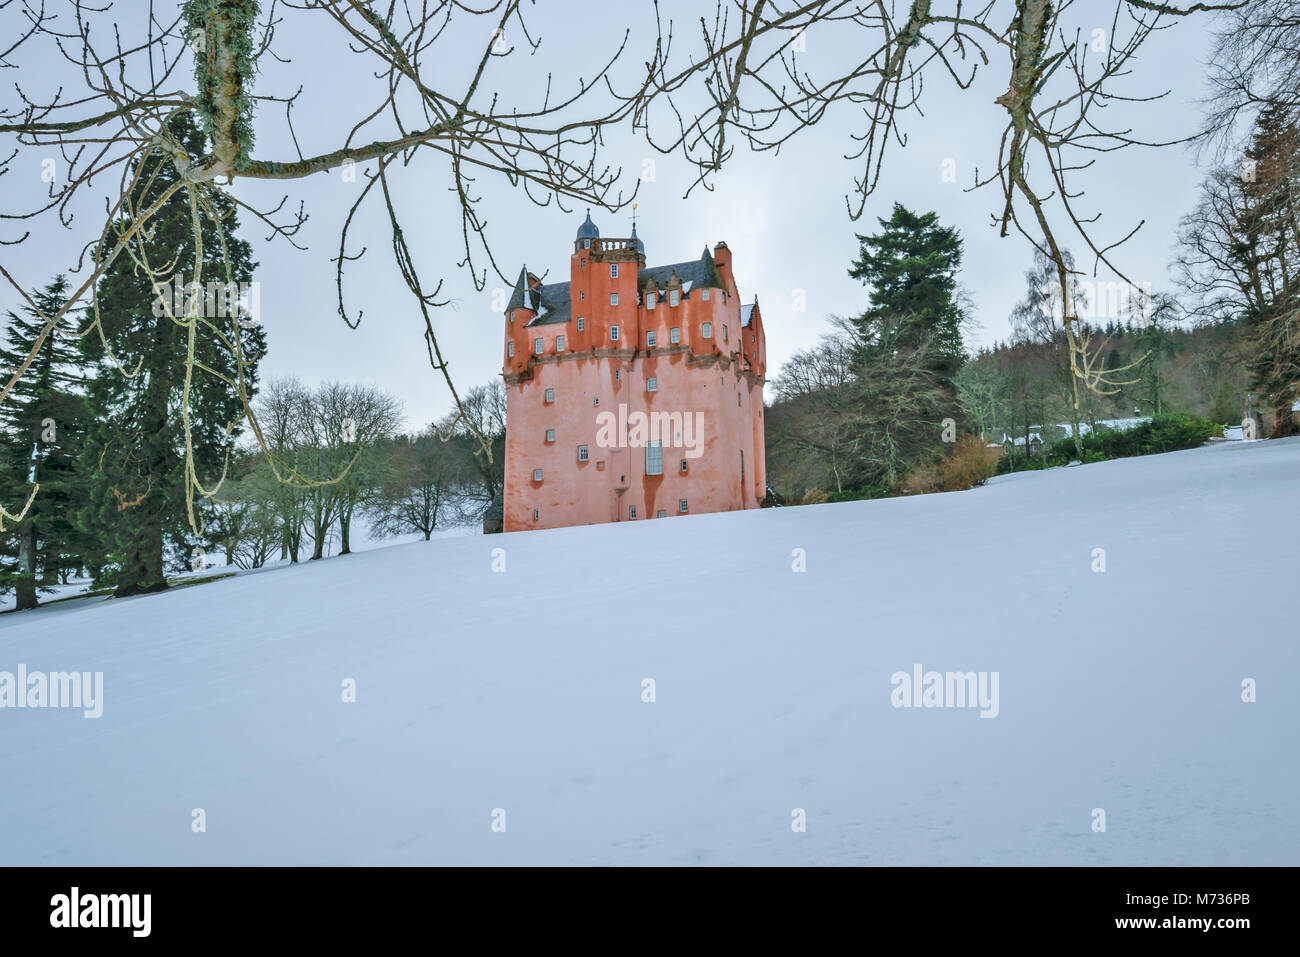 CRAIGIEVAR CASTLE ABERDEENSHIRE SCOTLAND THE PINK TOWER ON A SNOW COVERED HILL IN WINTER - Stock Image